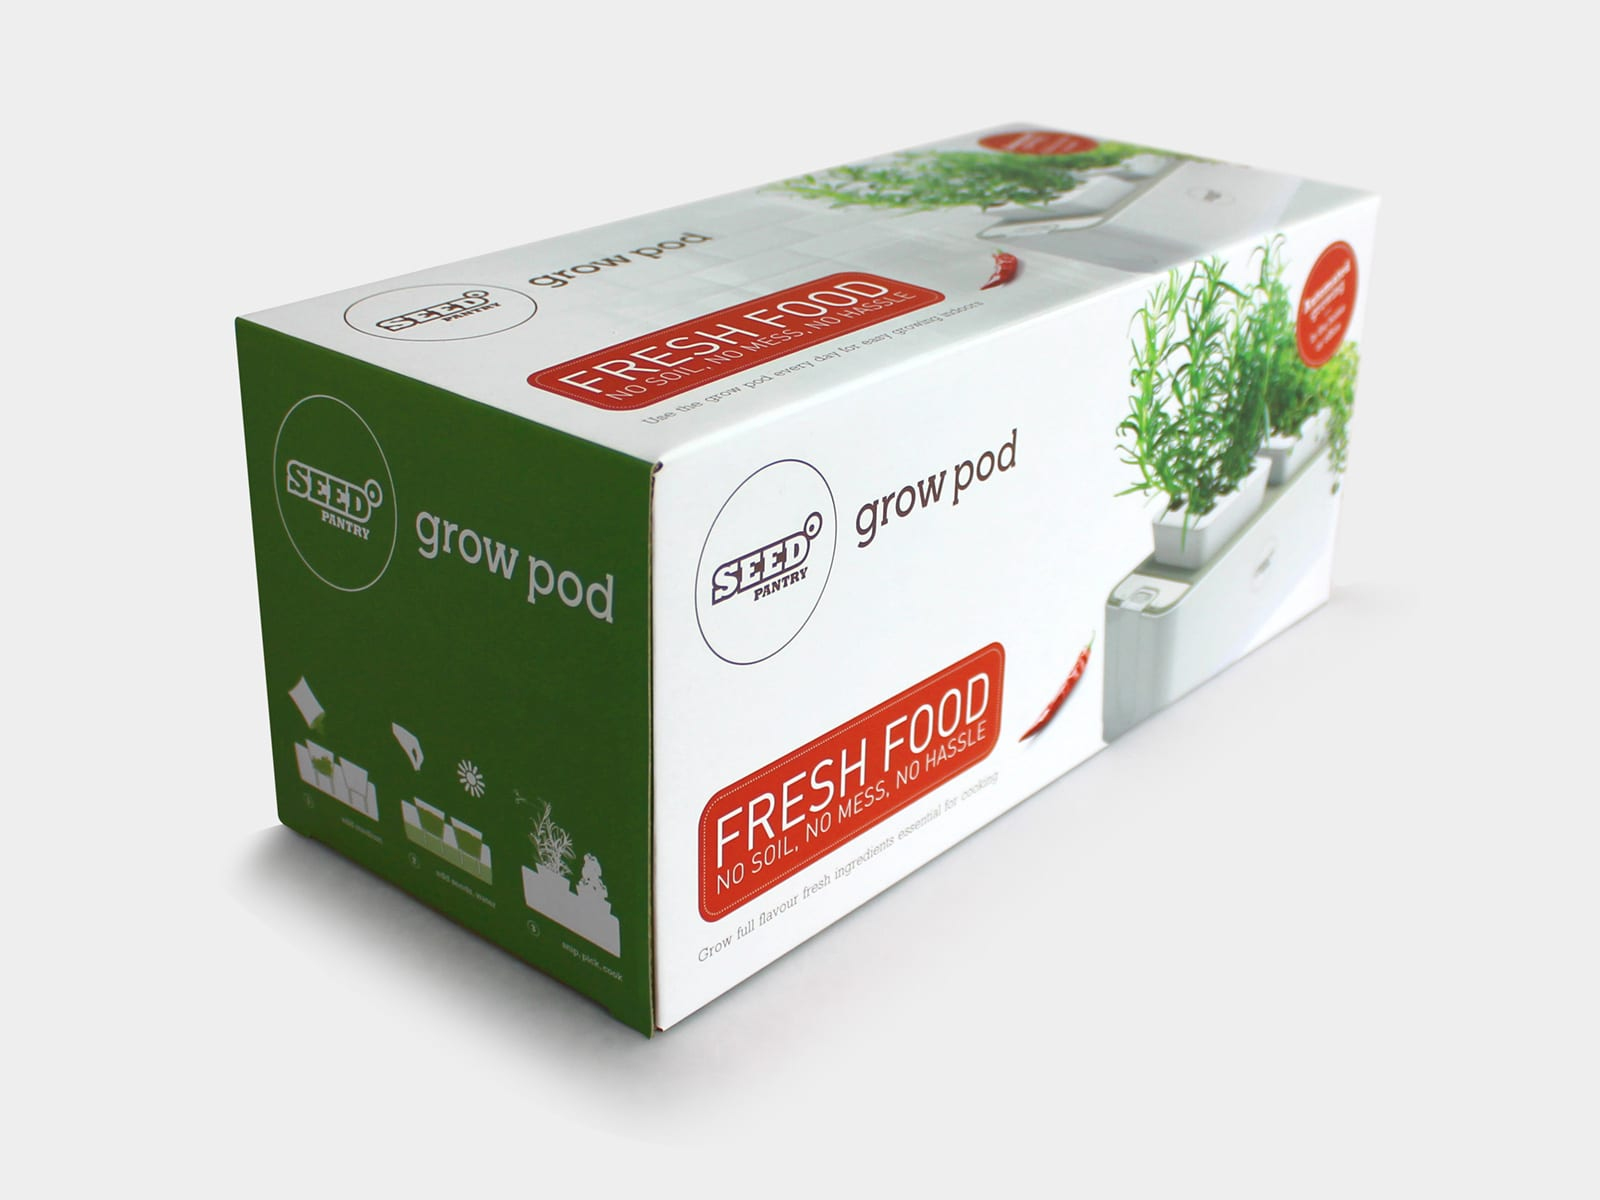 Mike-Garland-Seed-Pantry-grow-pod-box